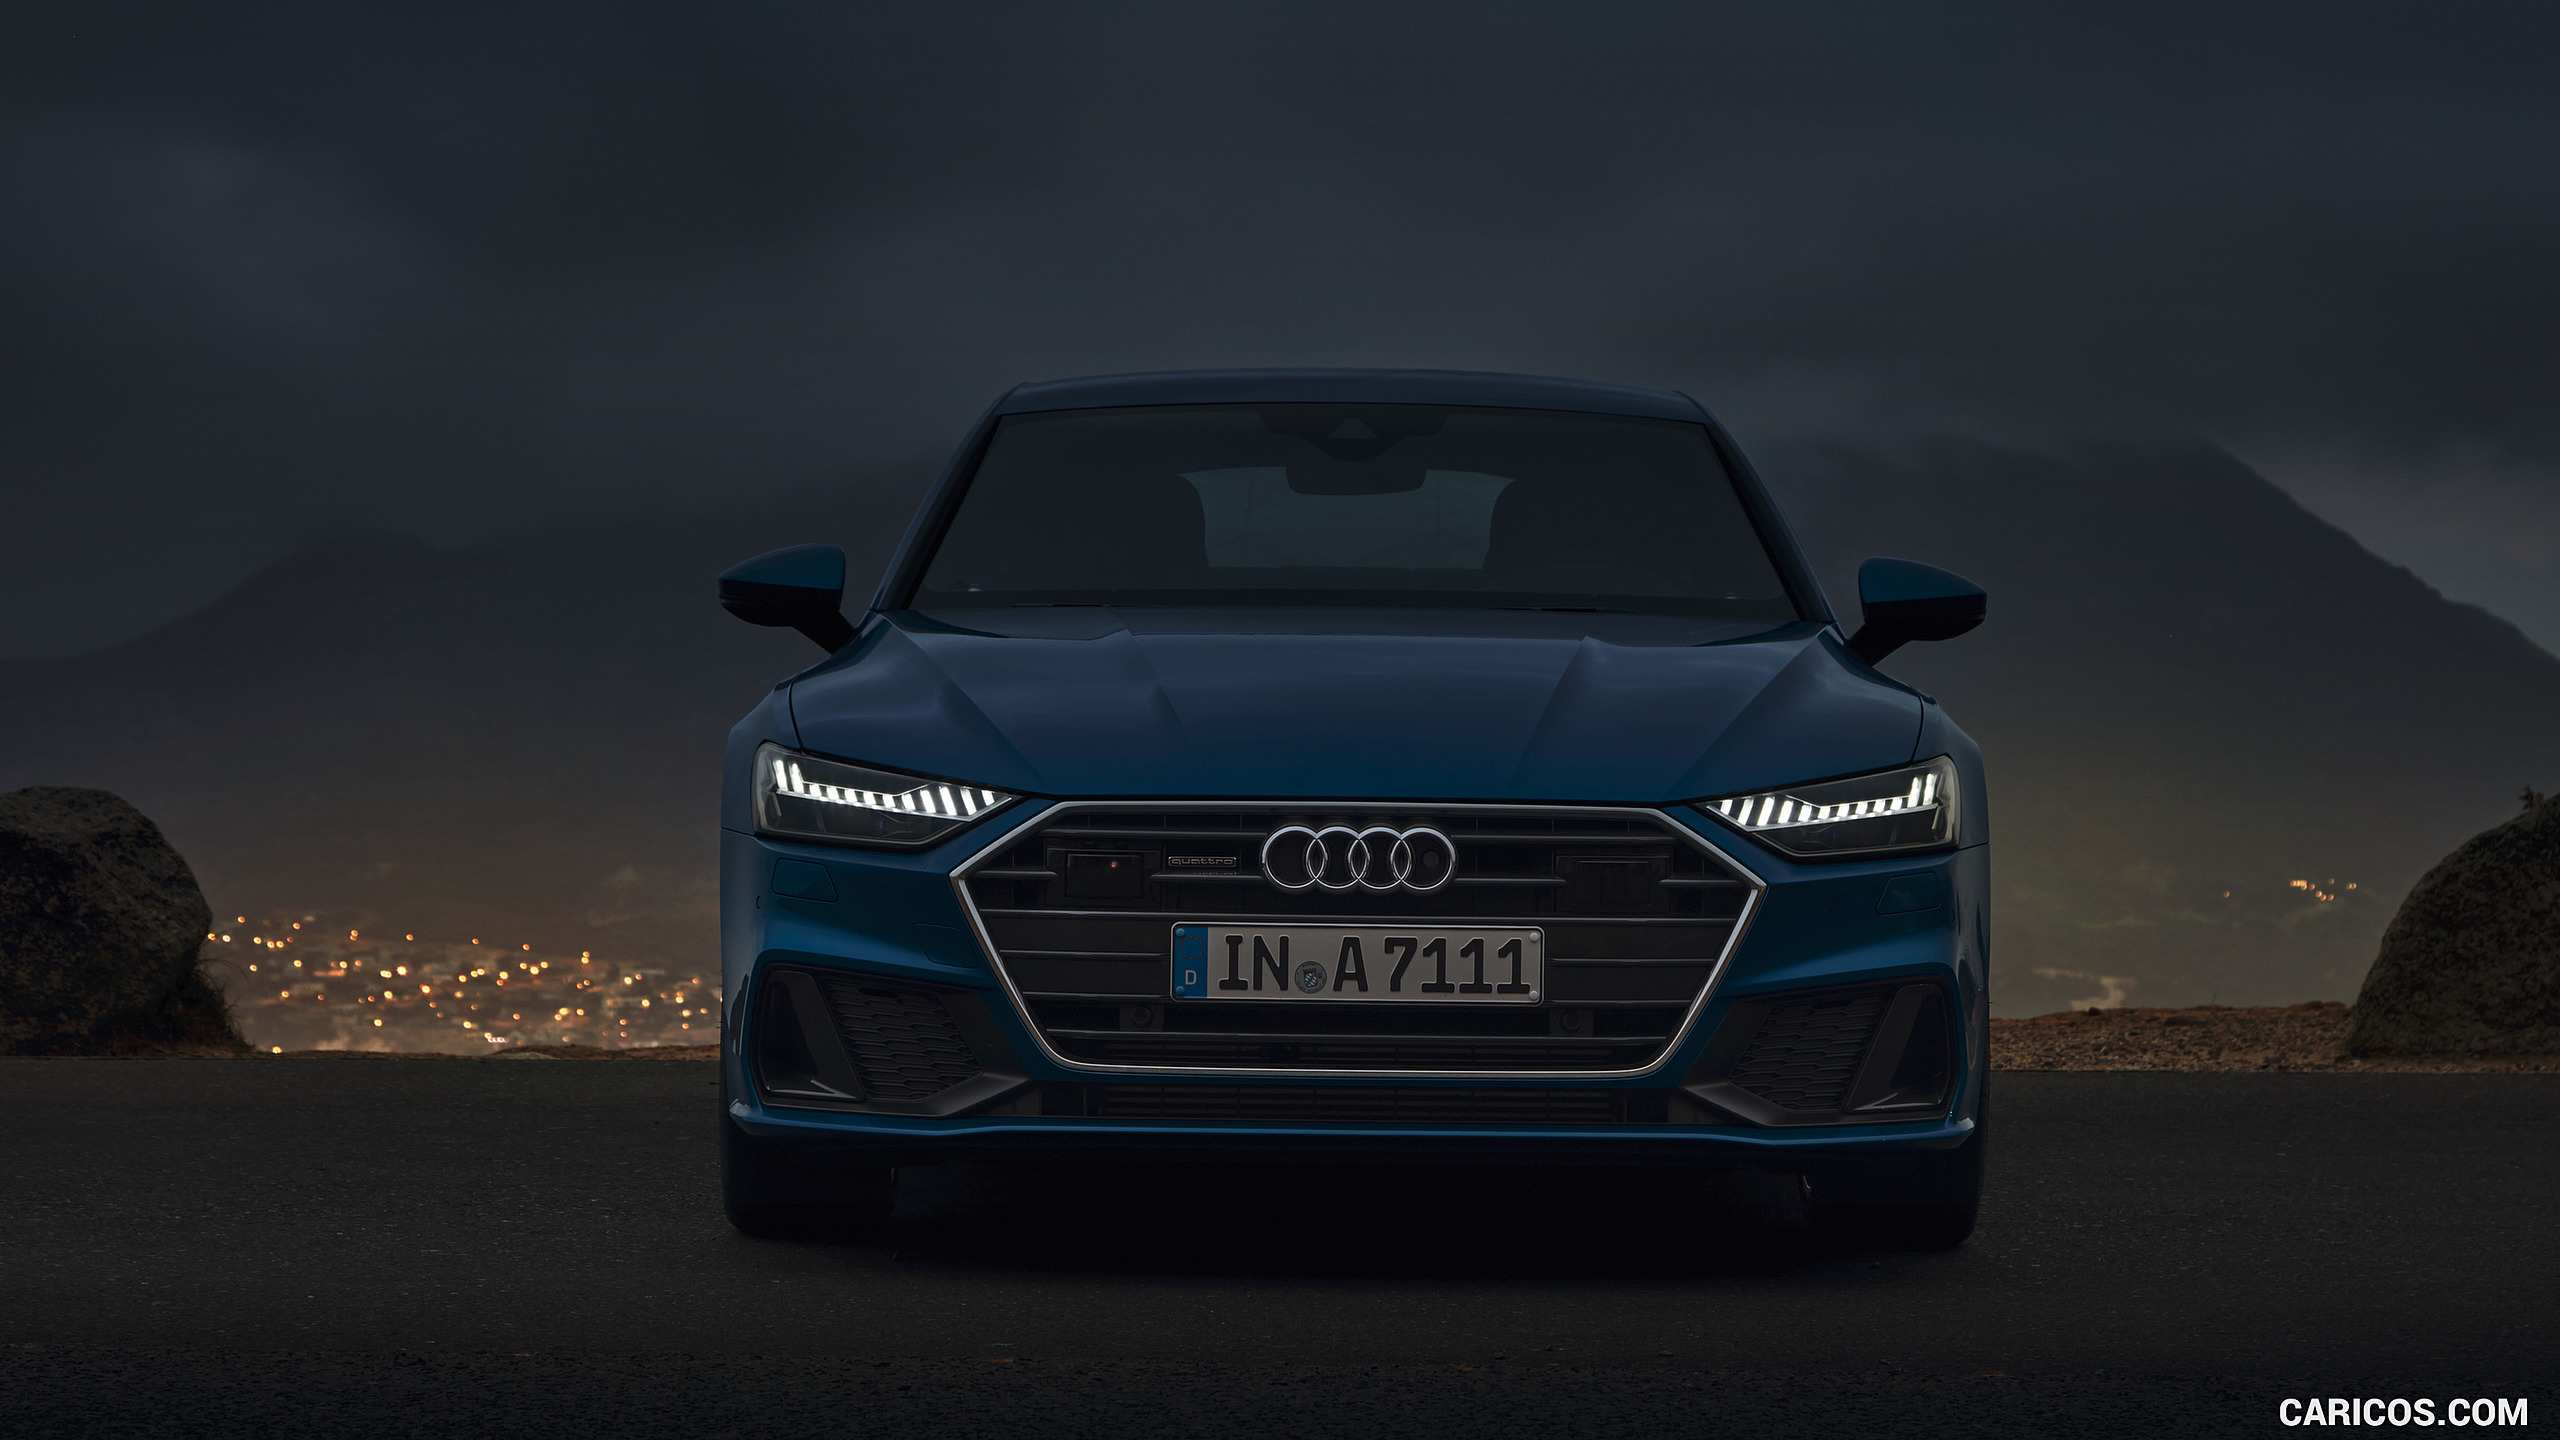 86 Concept of 2019 Audi A7 Headlights Redesign and Concept with 2019 Audi A7 Headlights